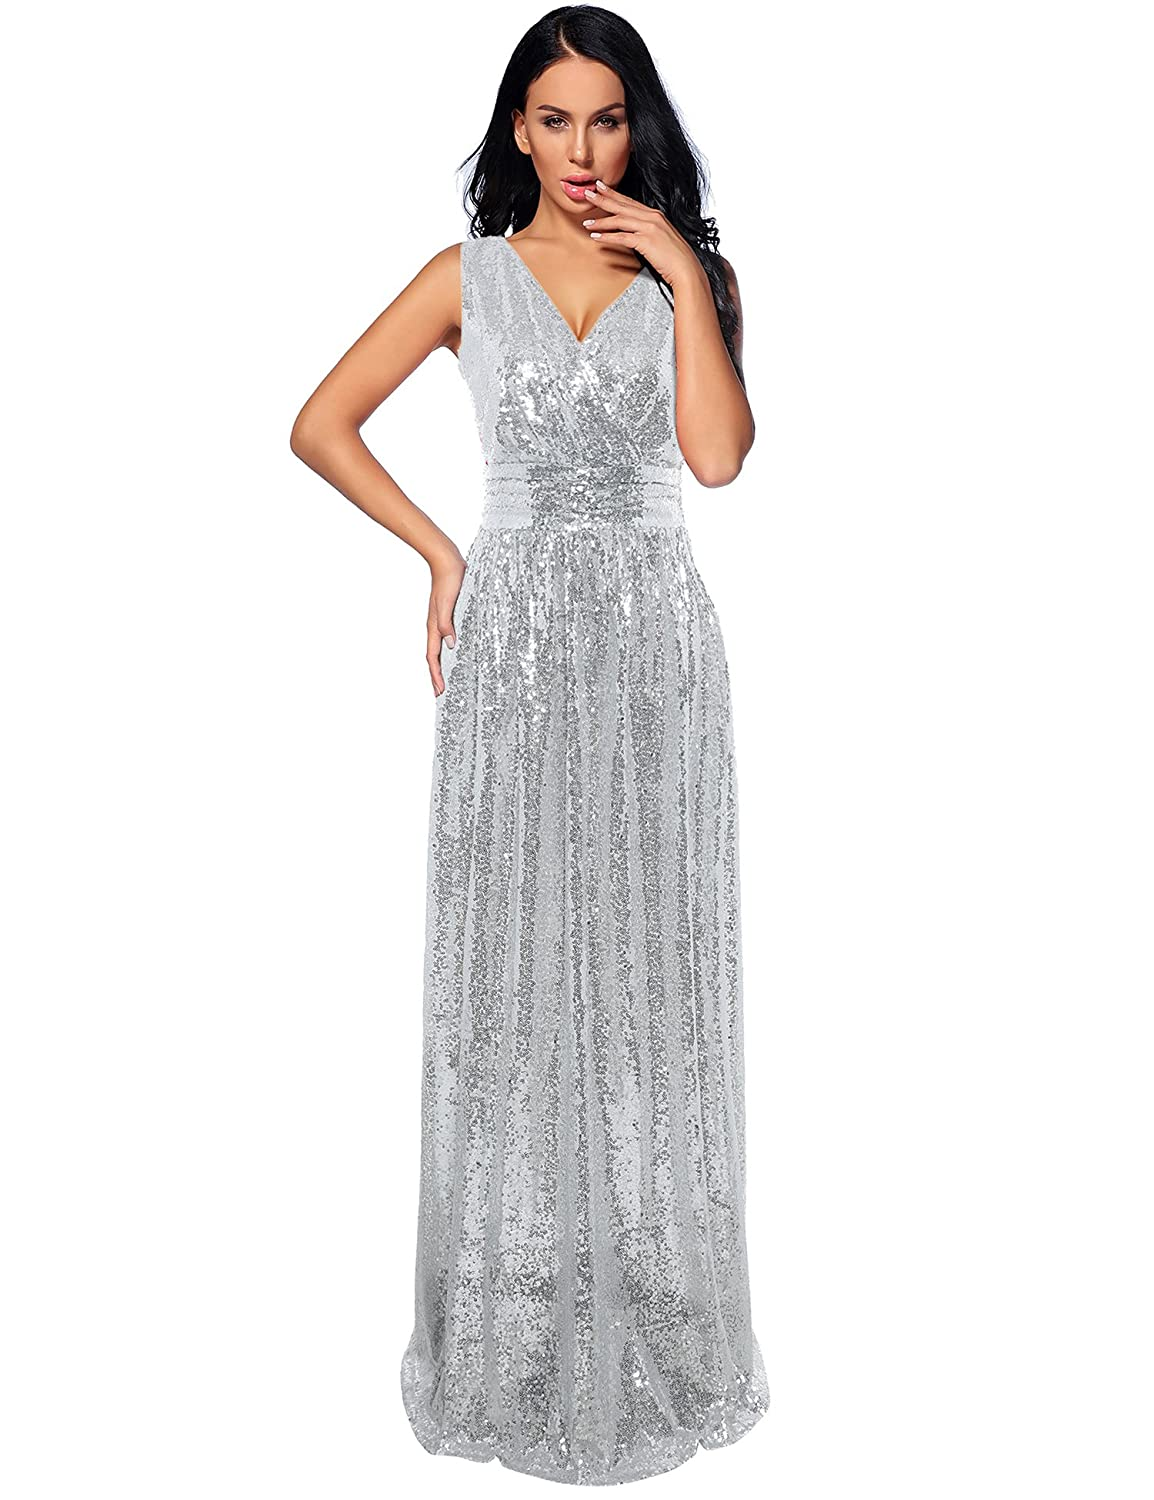 Flapper Girl Women's Sequin Bridesmaid Dress Prom Banquet Evening Formal Dresses by Flapper Girl